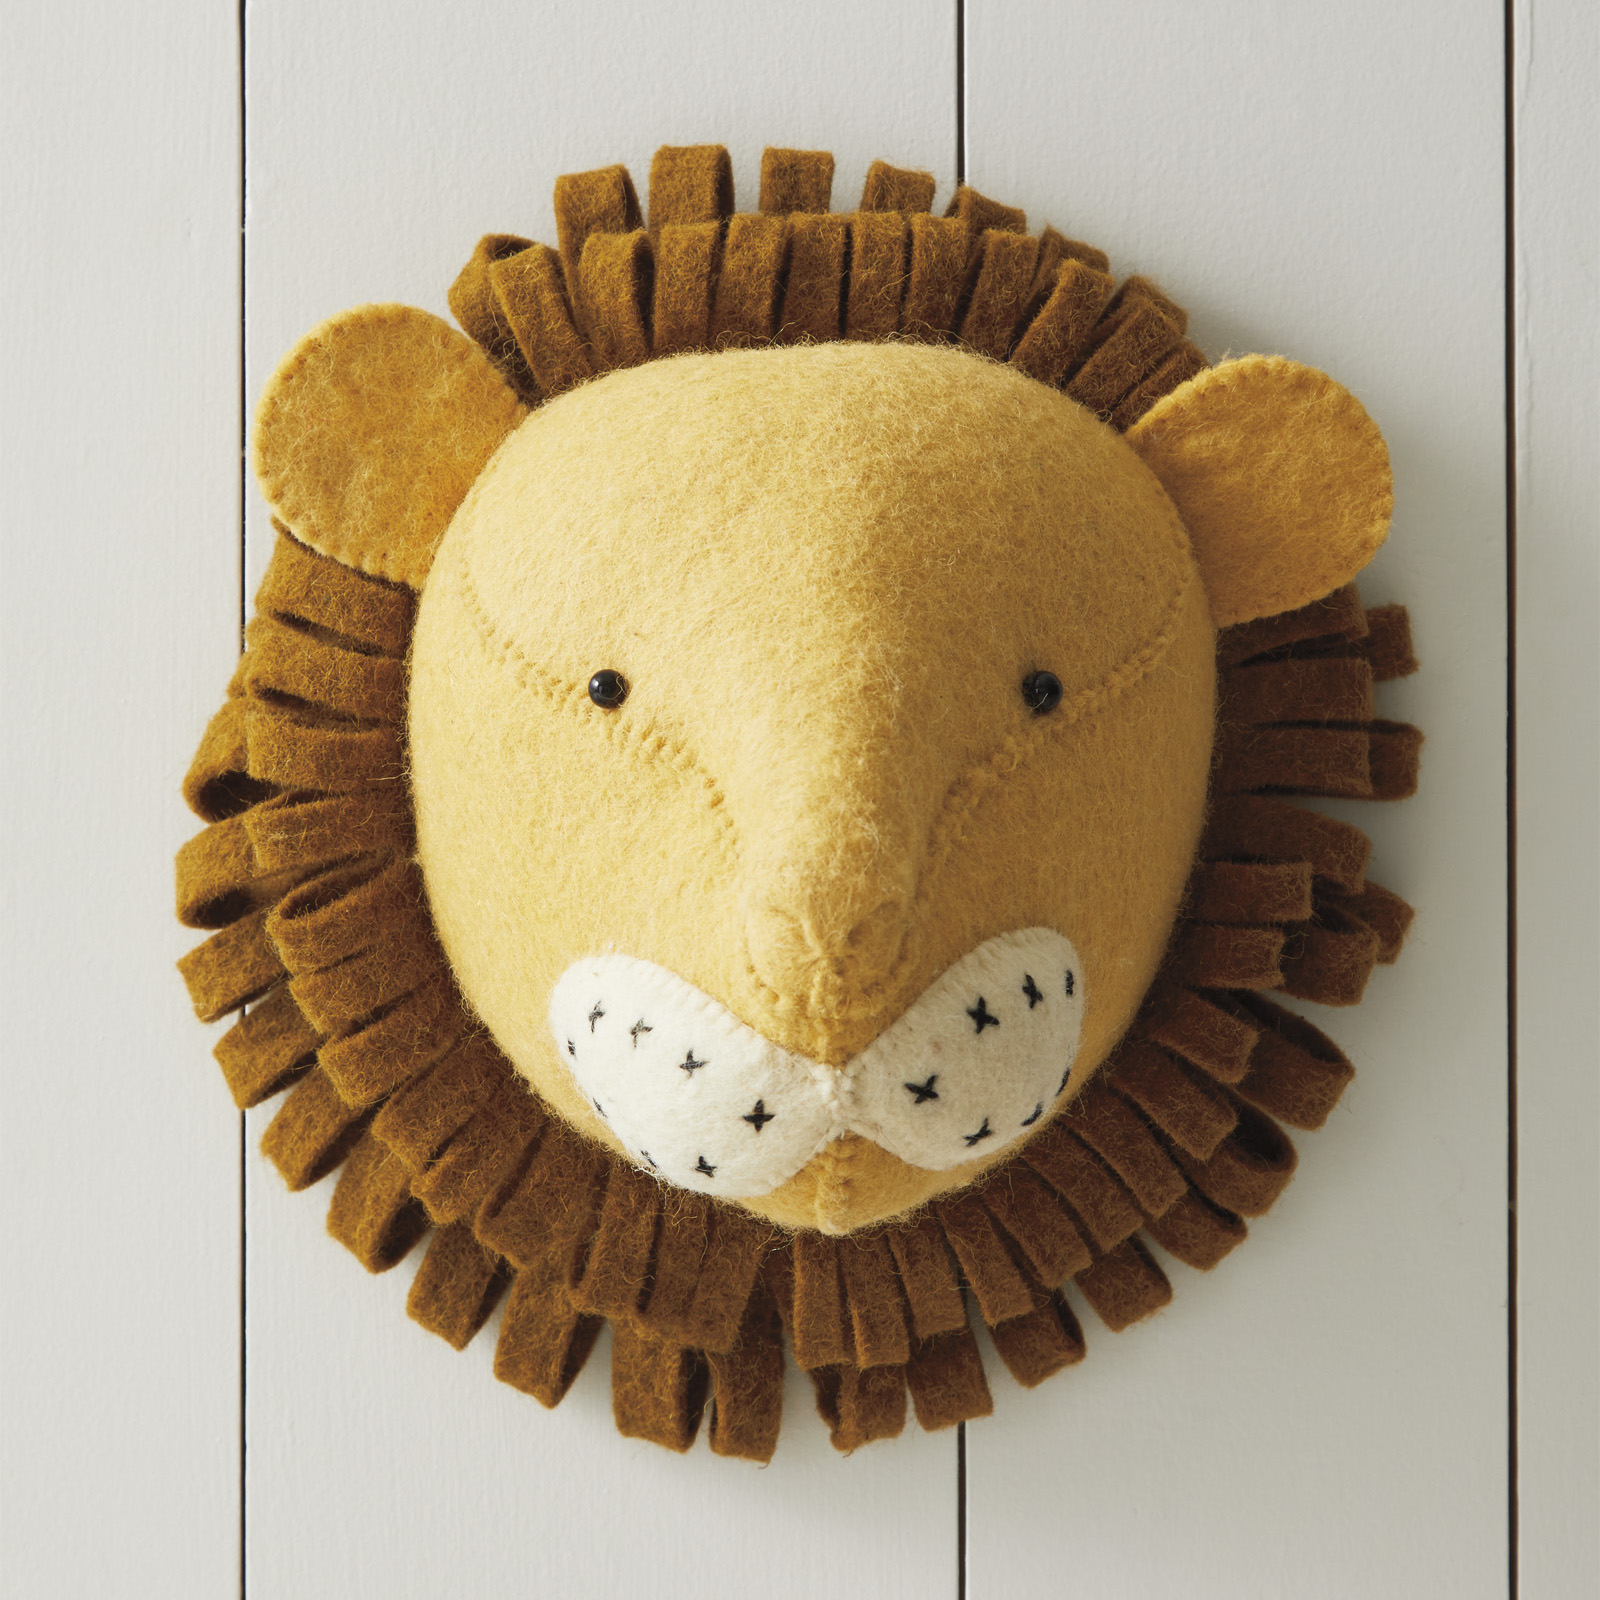 Nursery_Felt_Animal_Heads_Lion_MV_0290_Crop_BASE.jpg